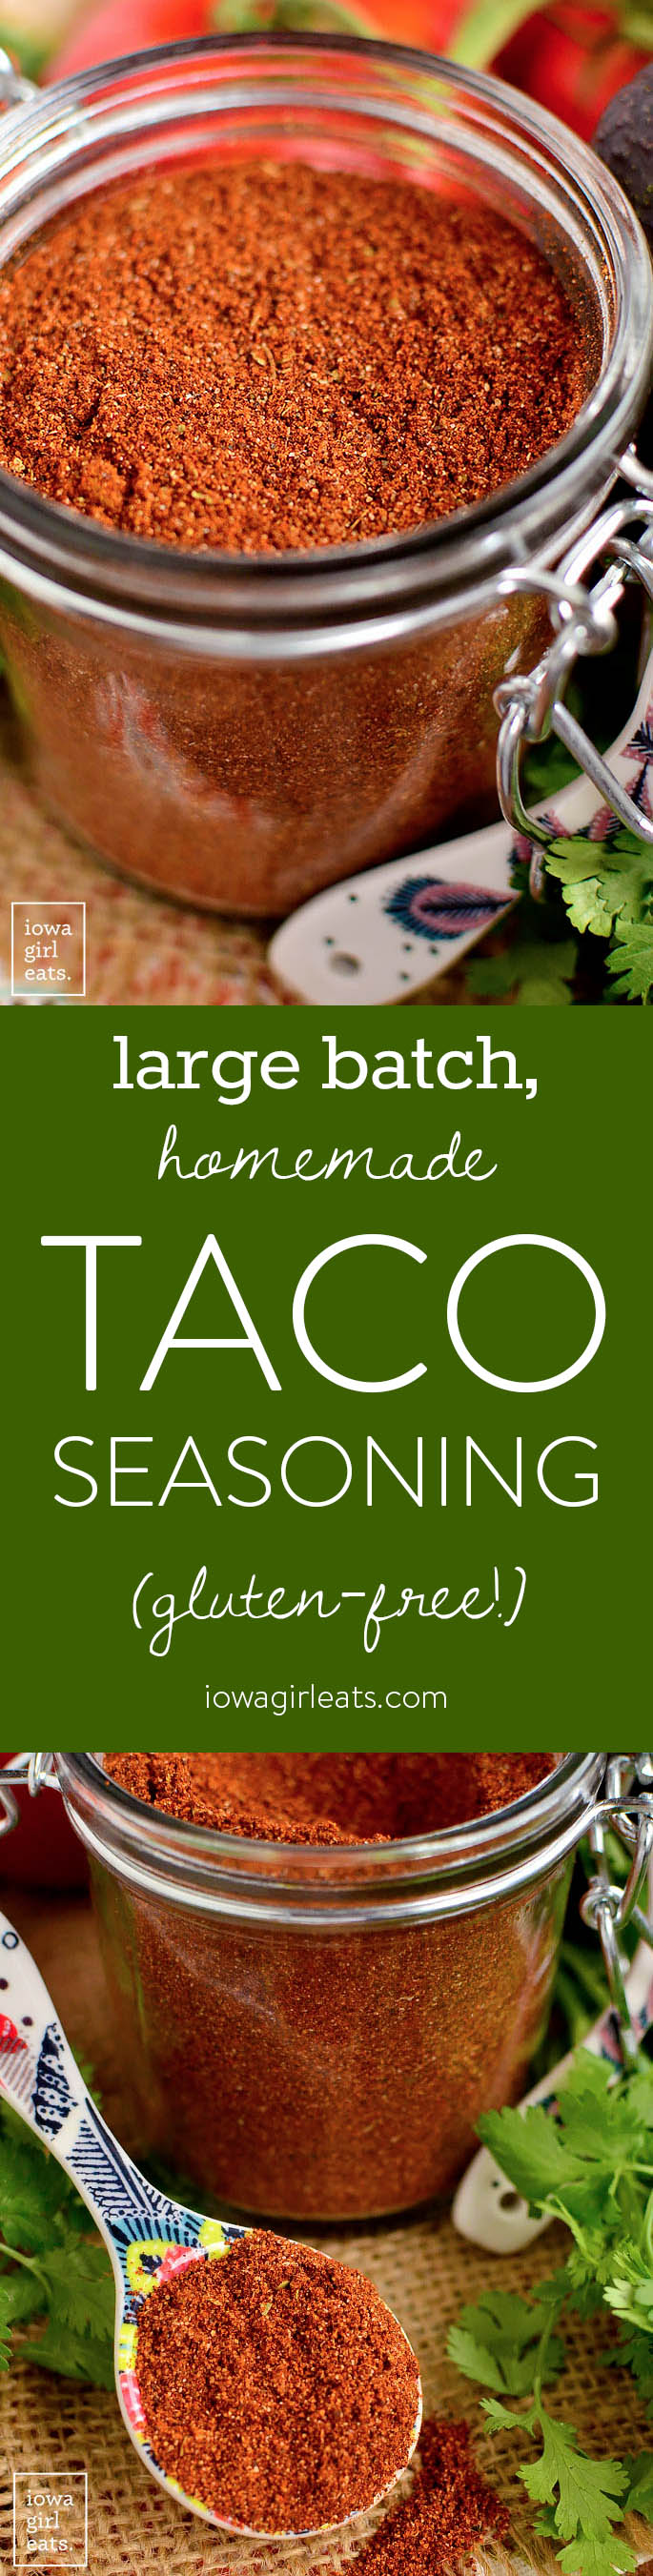 Large Batch Homemade Taco Seasoning is a cinch to prepare and ready when you are for taco night! Full of spice cupboard staples and free from gluten, artificial flavors, and ingredients. | iowagirleats.com